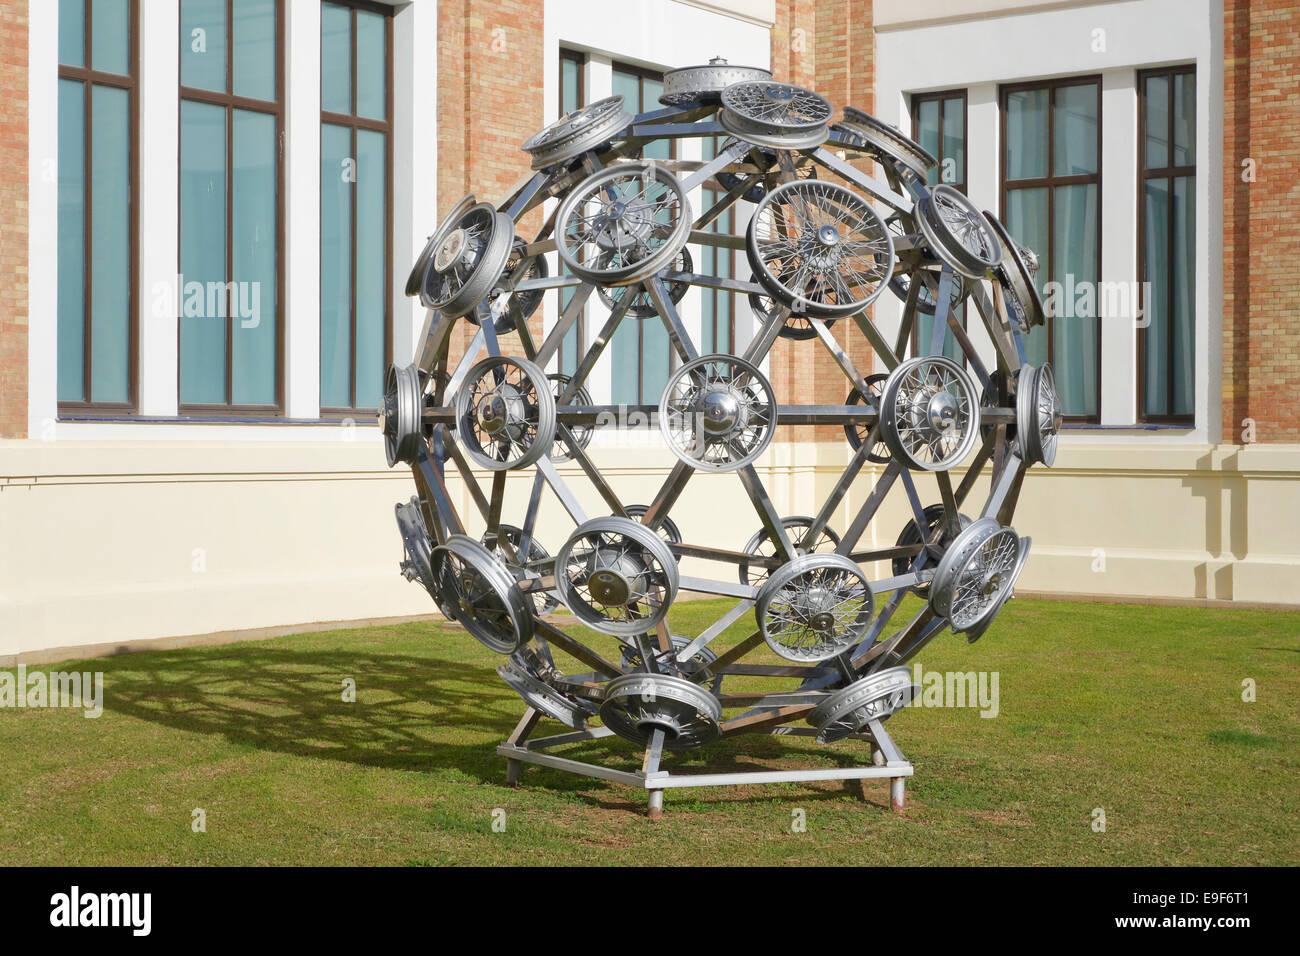 Sculpture of wheel rims at Car, Automobile Museum of Málaga, Andalusia, Spain. - Stock Image